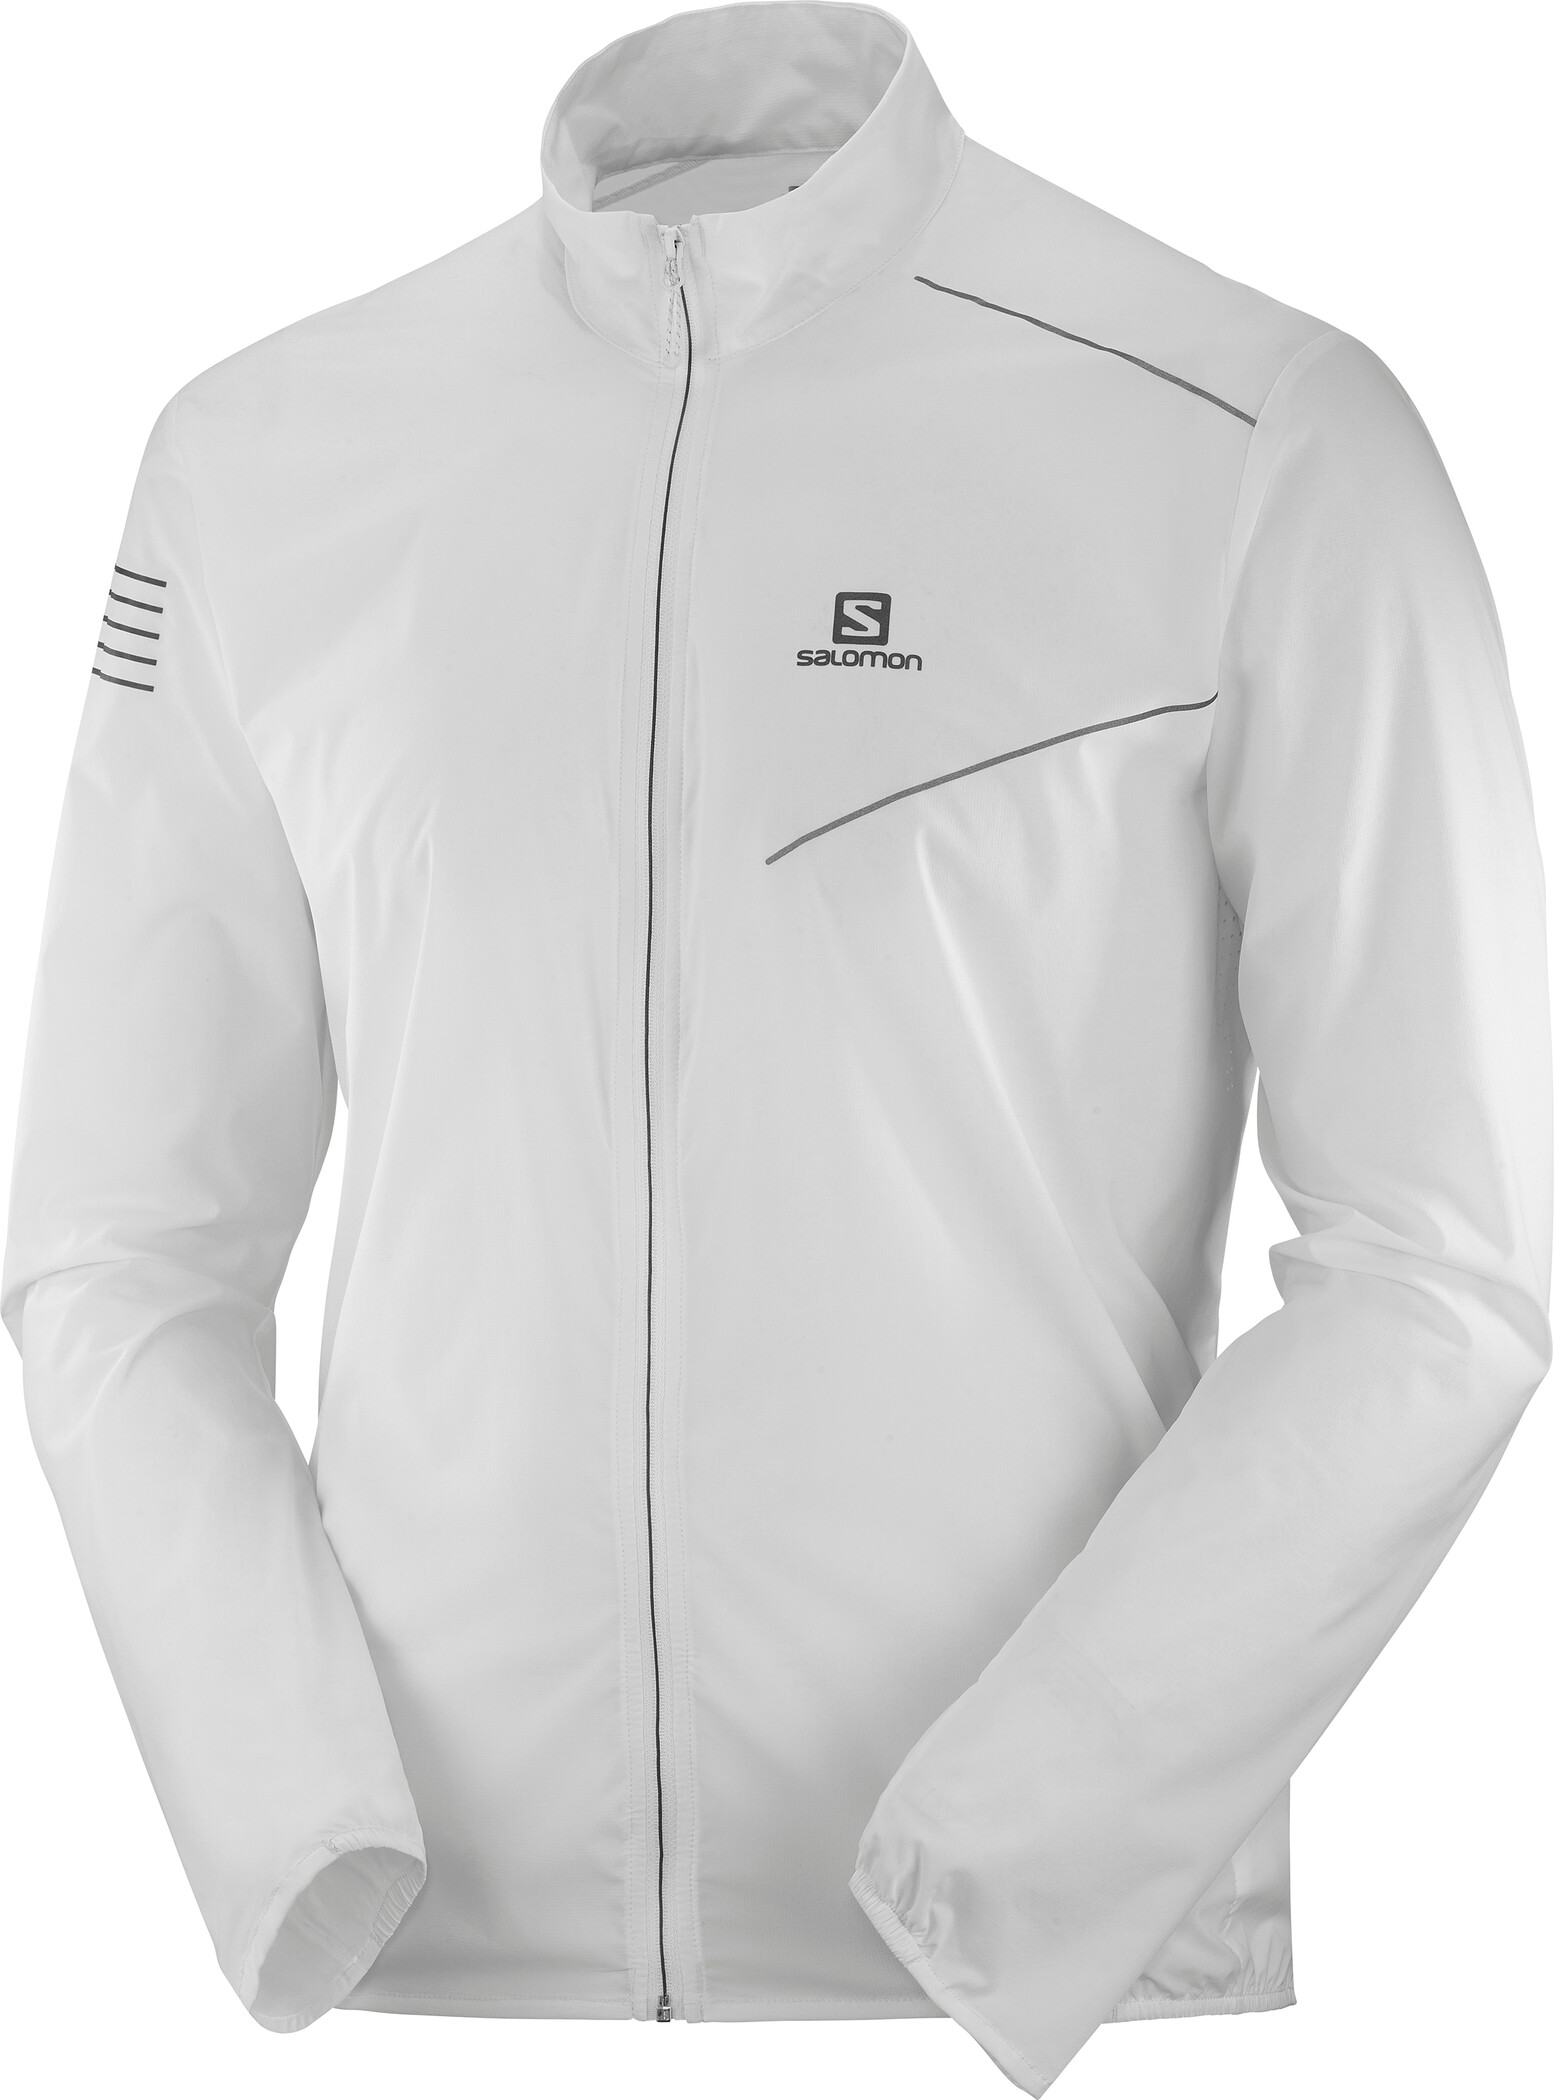 Salomon Sense Jacket Herr white